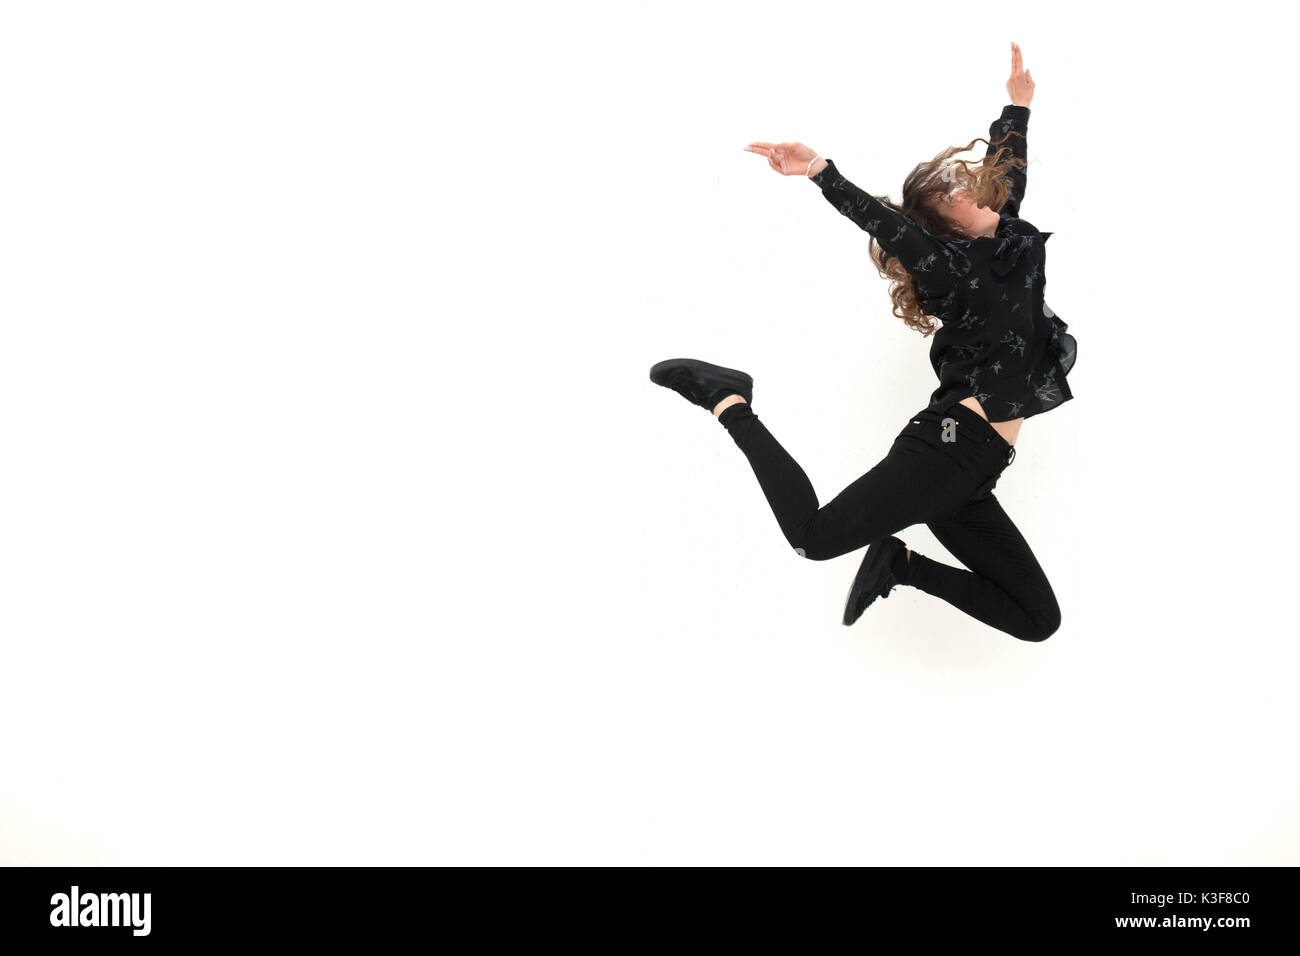 Young Adult Woman Leaping in Air During Dance Routine - Stock Image